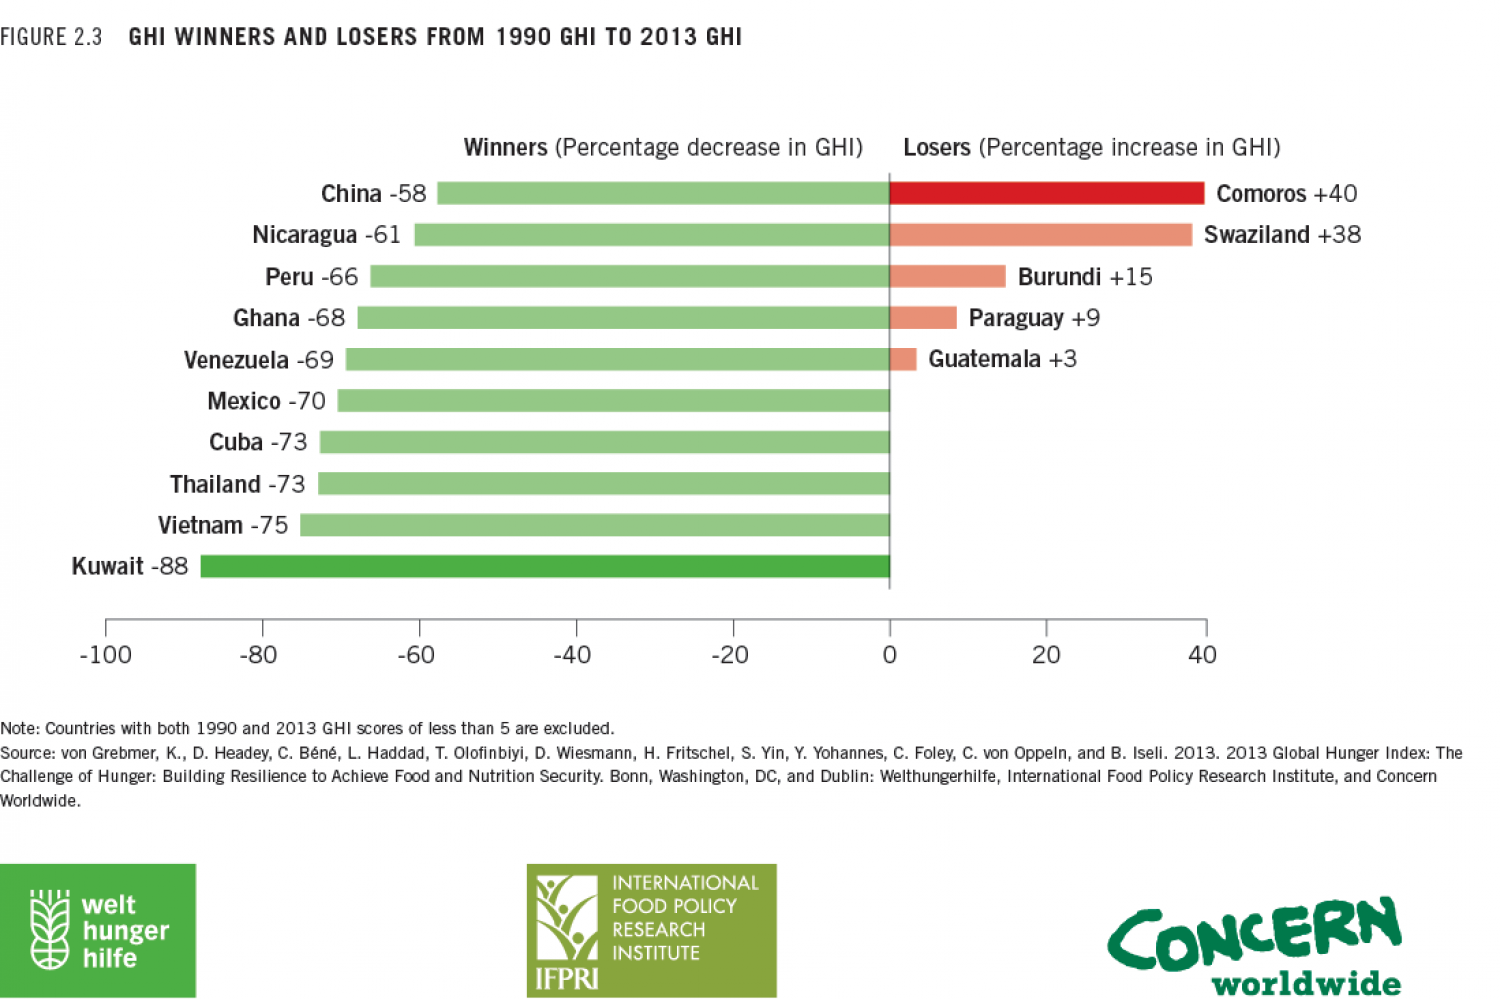 Global Hunger Index (GHI) winners and losers from 1990 GHI to 2013 GHI Infographic